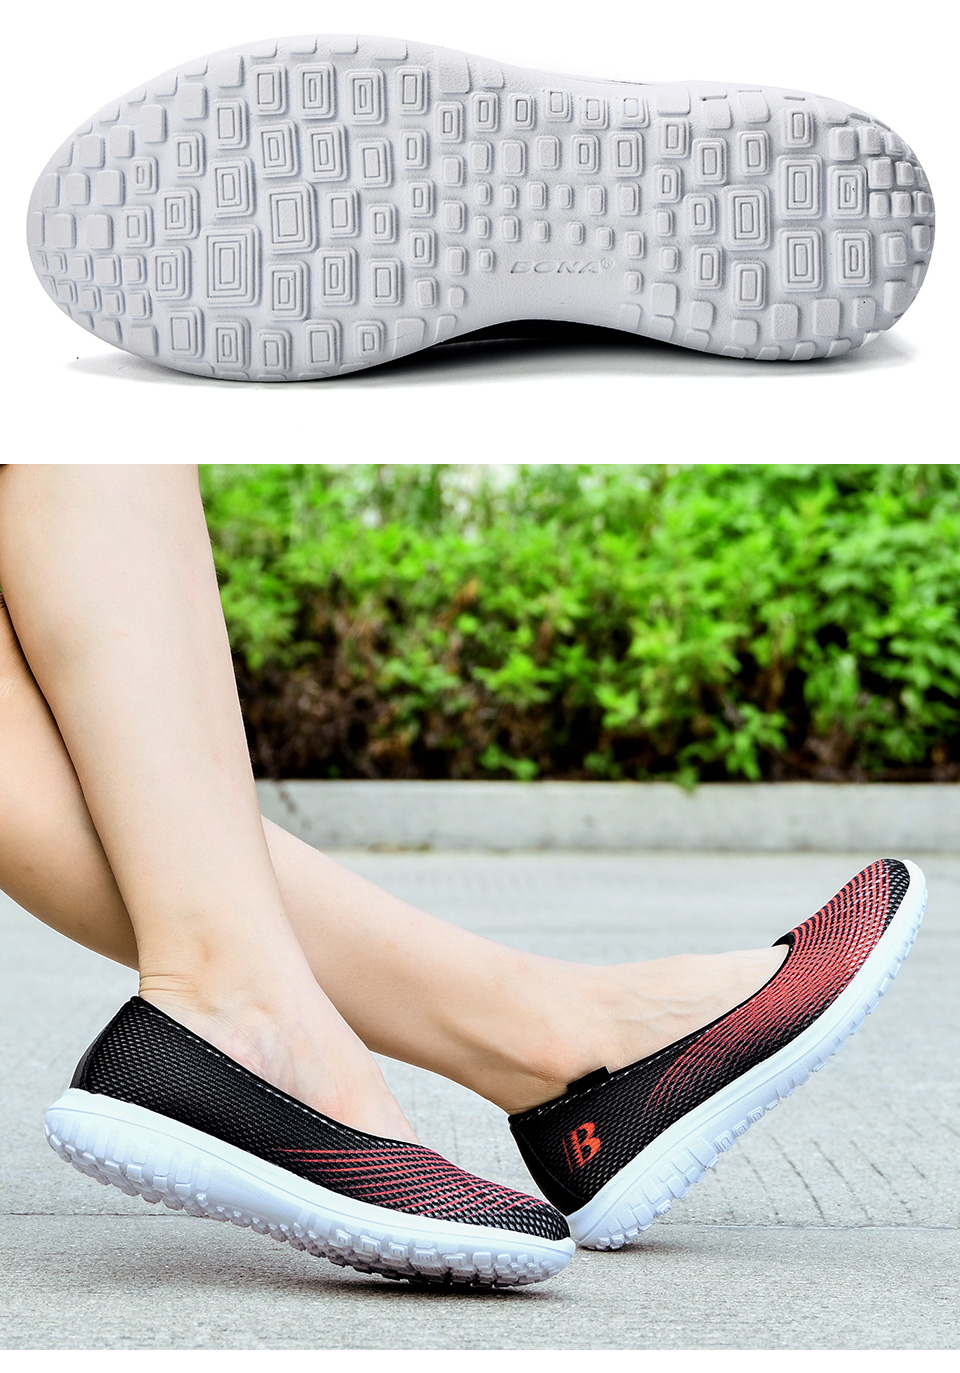 Women Sport Flats Fashion Shoes HTB1dd71JVuWBuNjSszbq6AS7FXaL